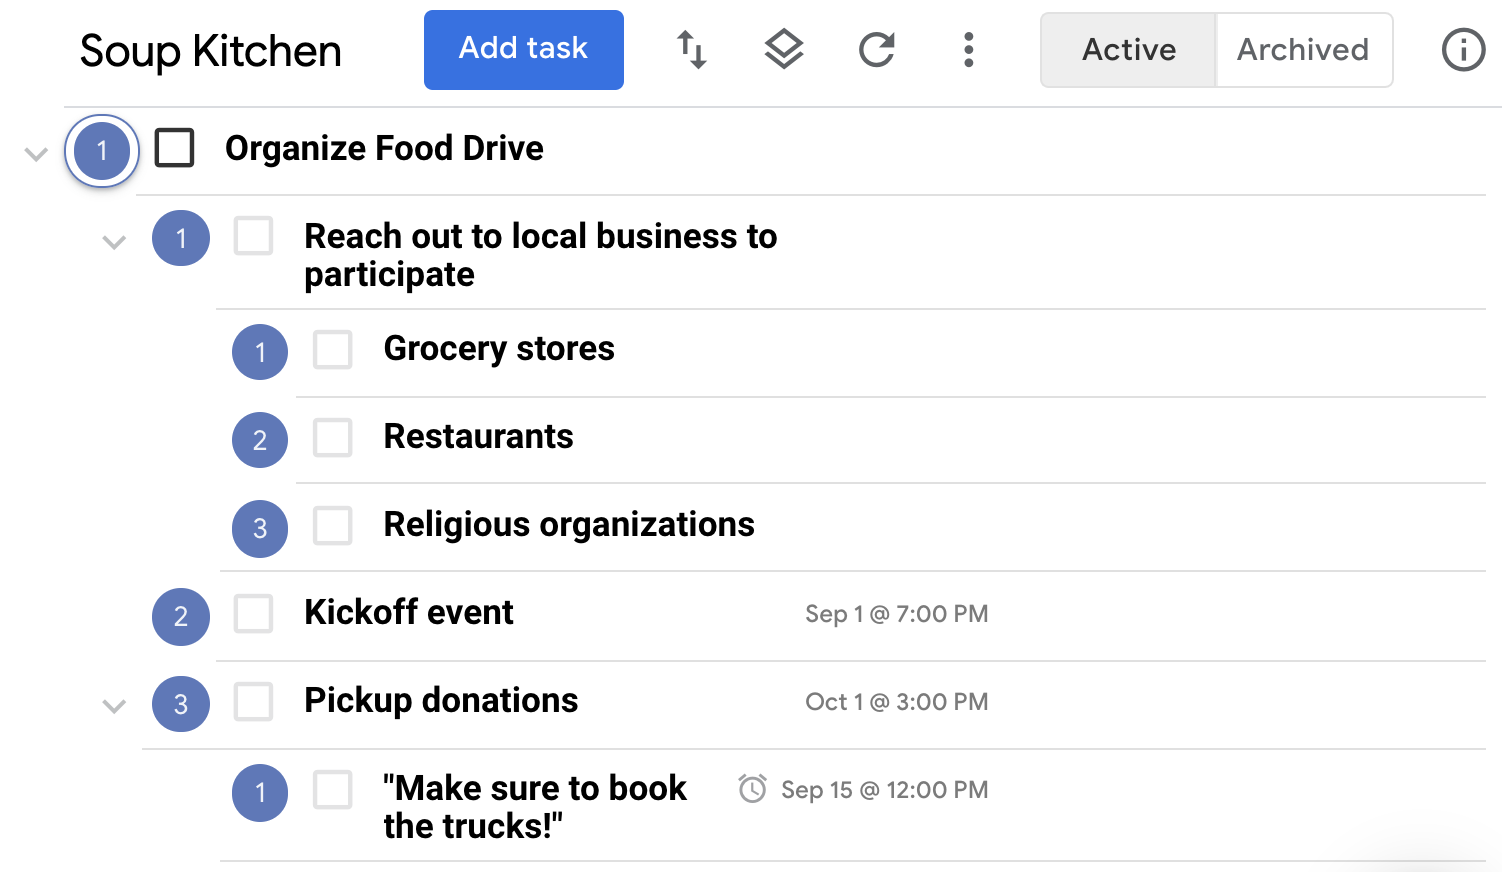 Tasks created from the Quick Add Window